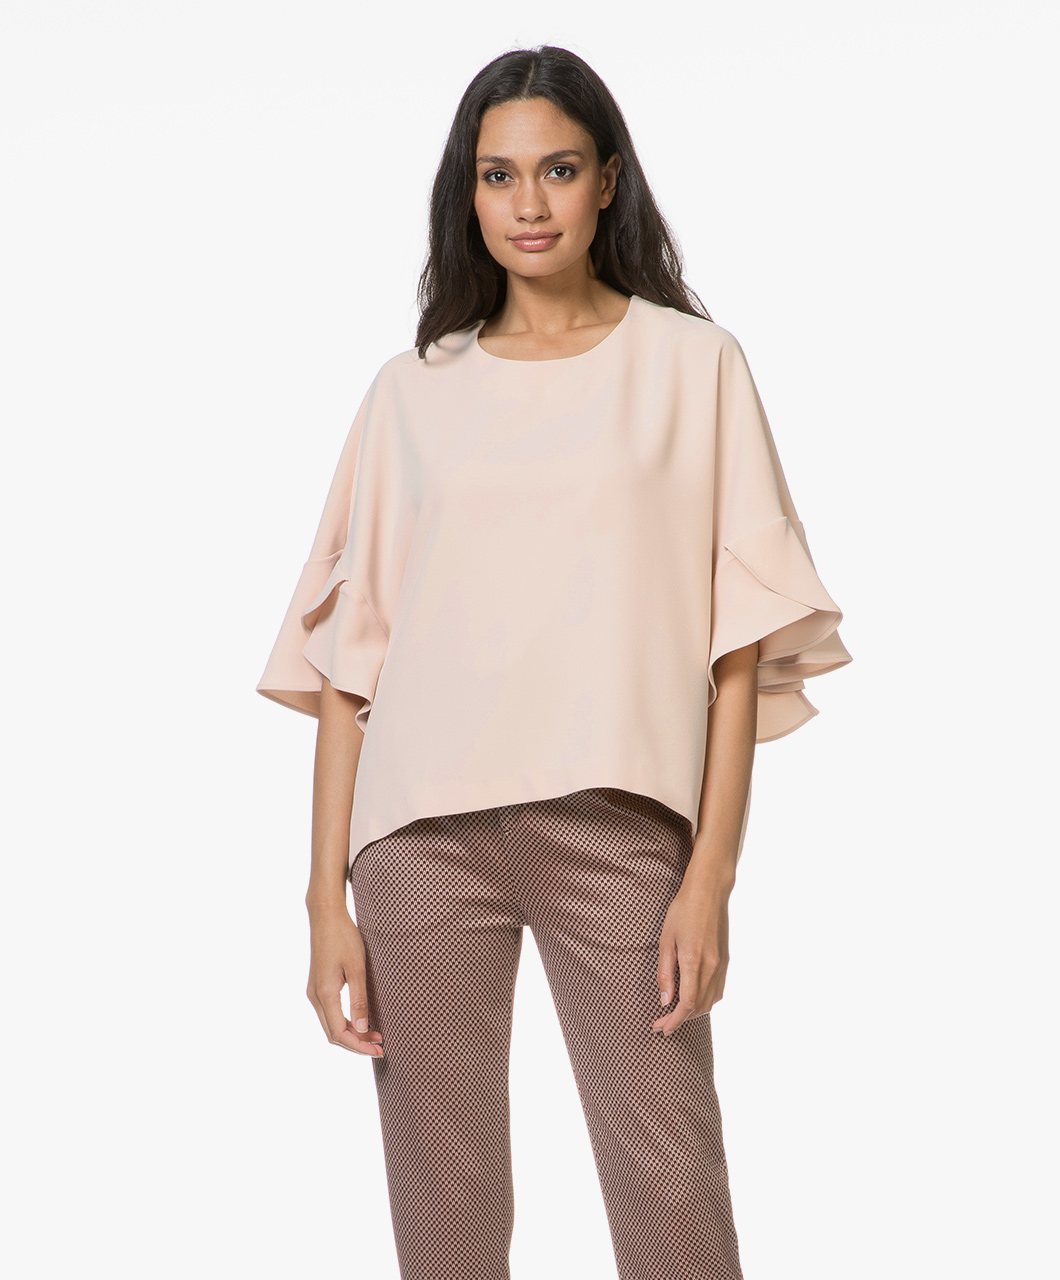 07d117e8455c16 IRO Ultra Crepe Blouse with Frill Sleeves - Nude - 18wwp16ultra bei11